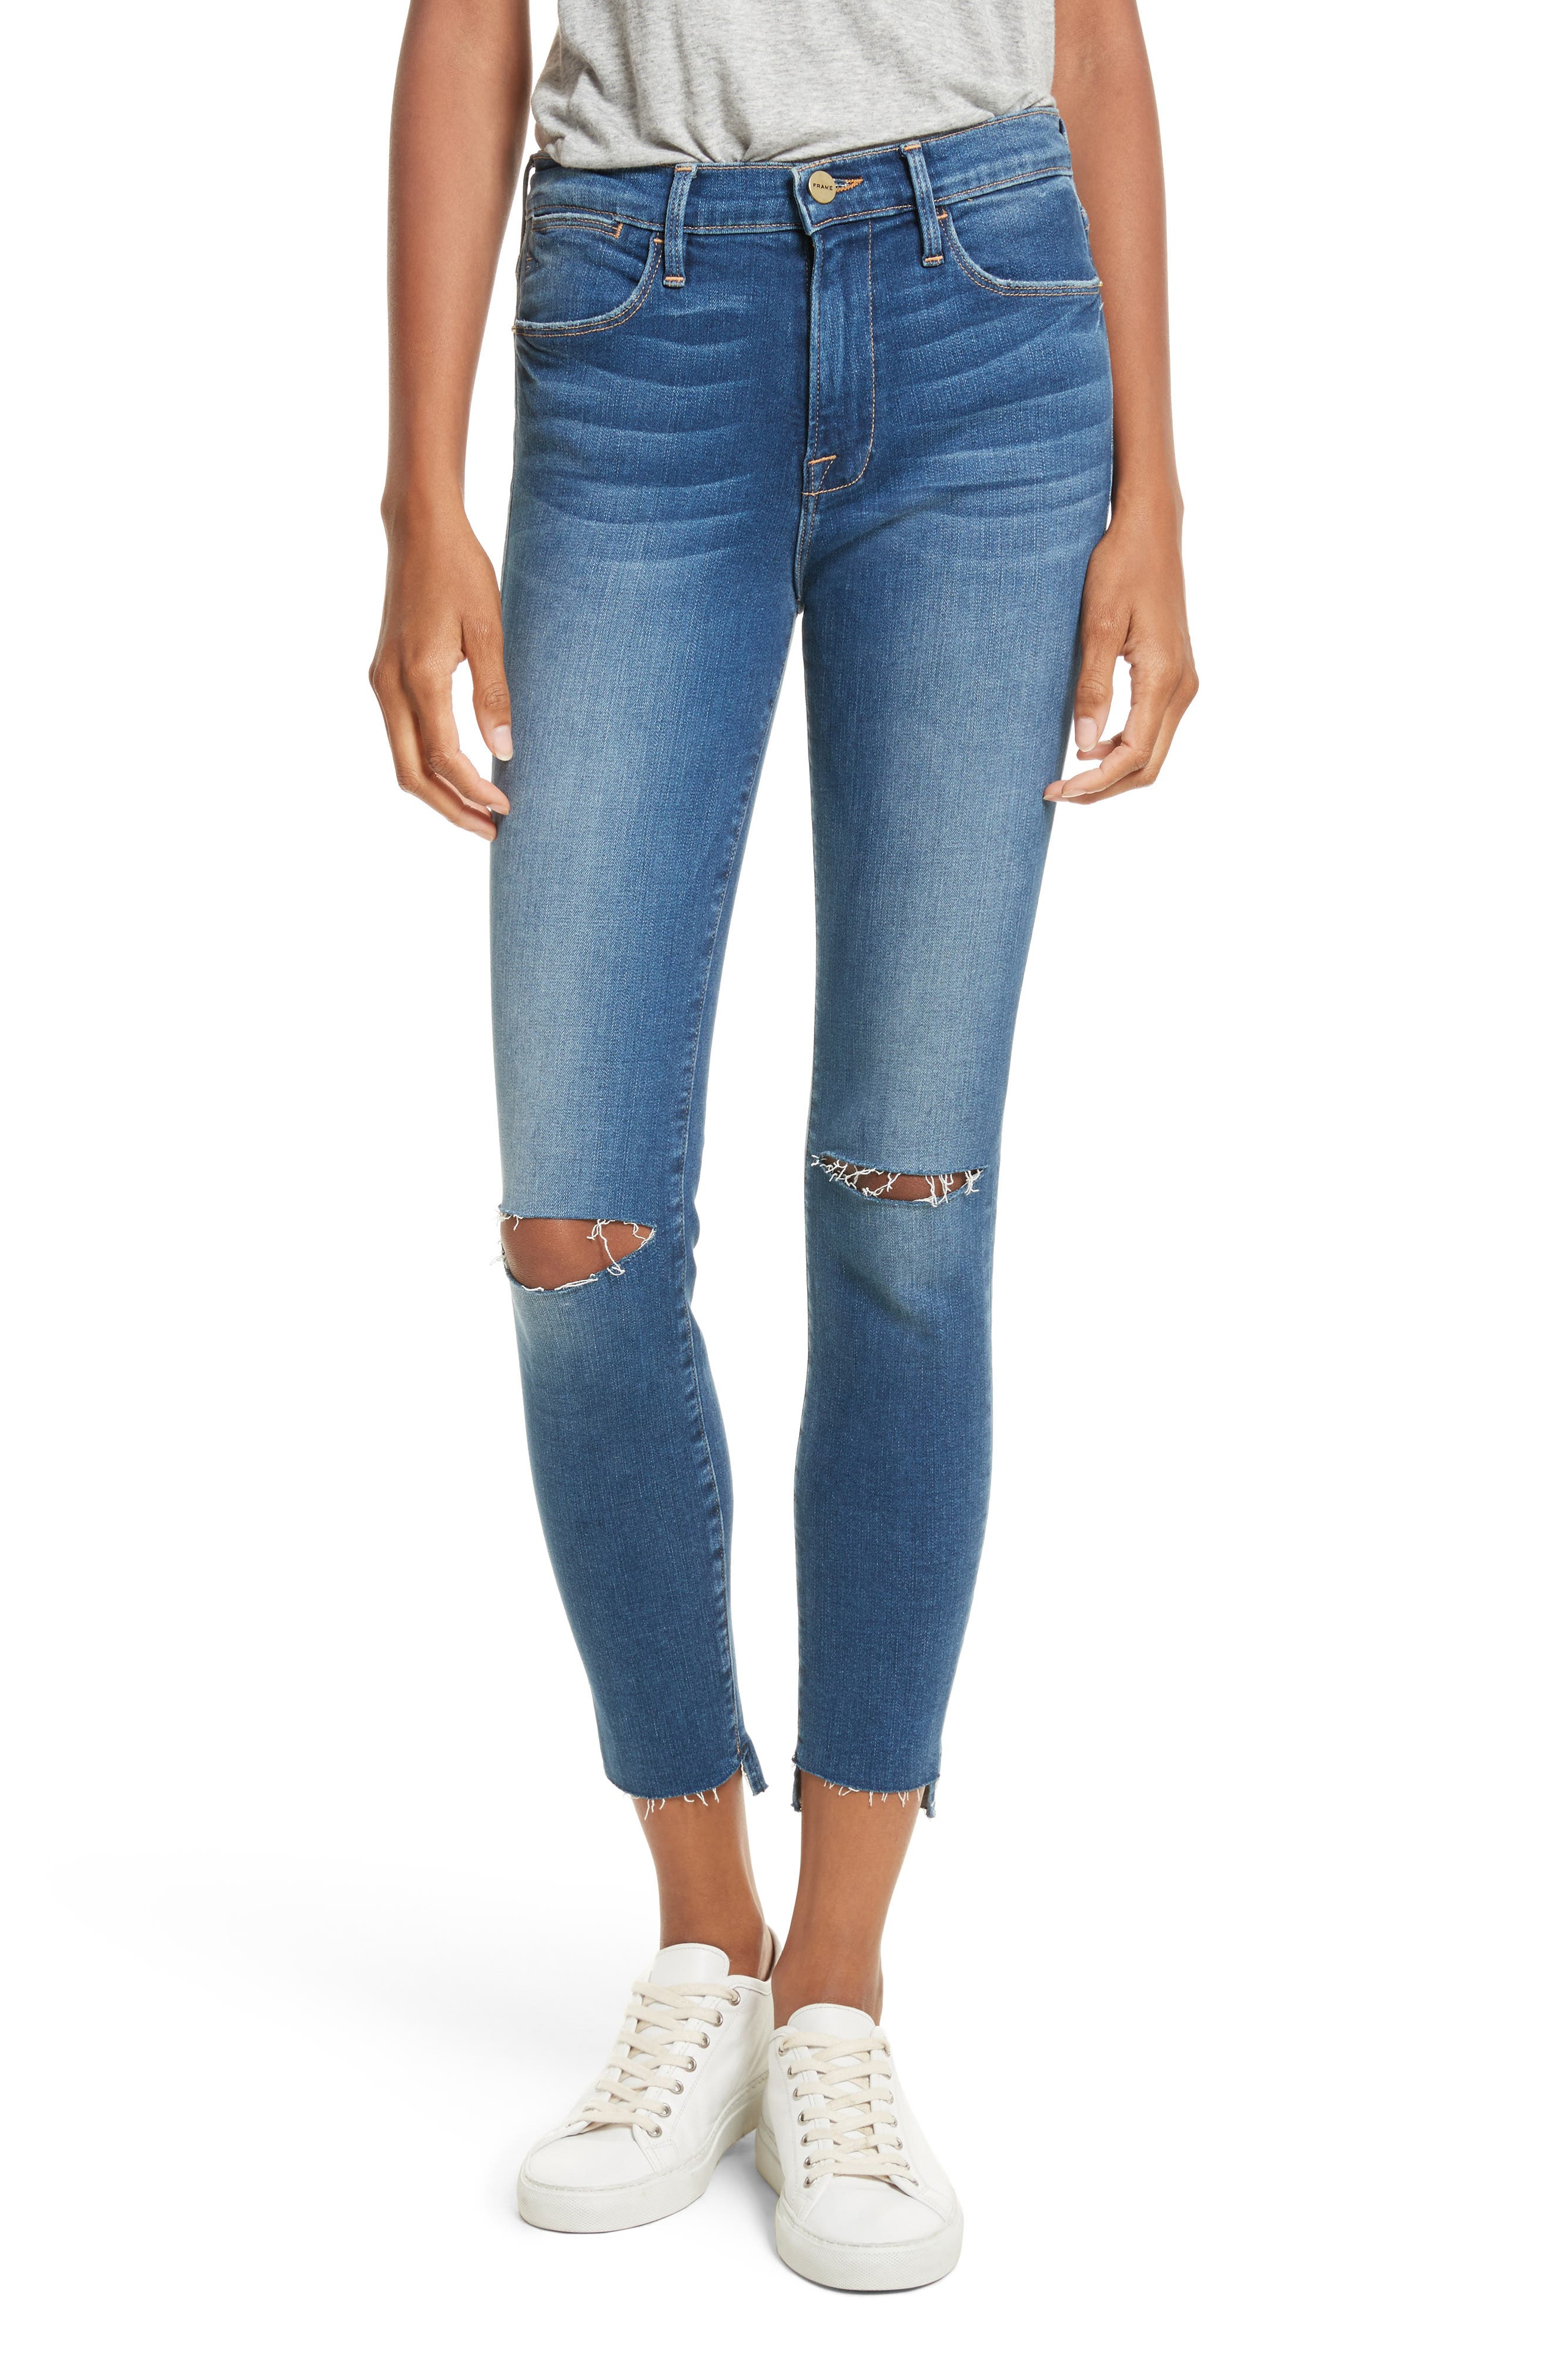 Alternate Image 1 Selected - FRAME Le High High Waist Ankle Skinny Jeans